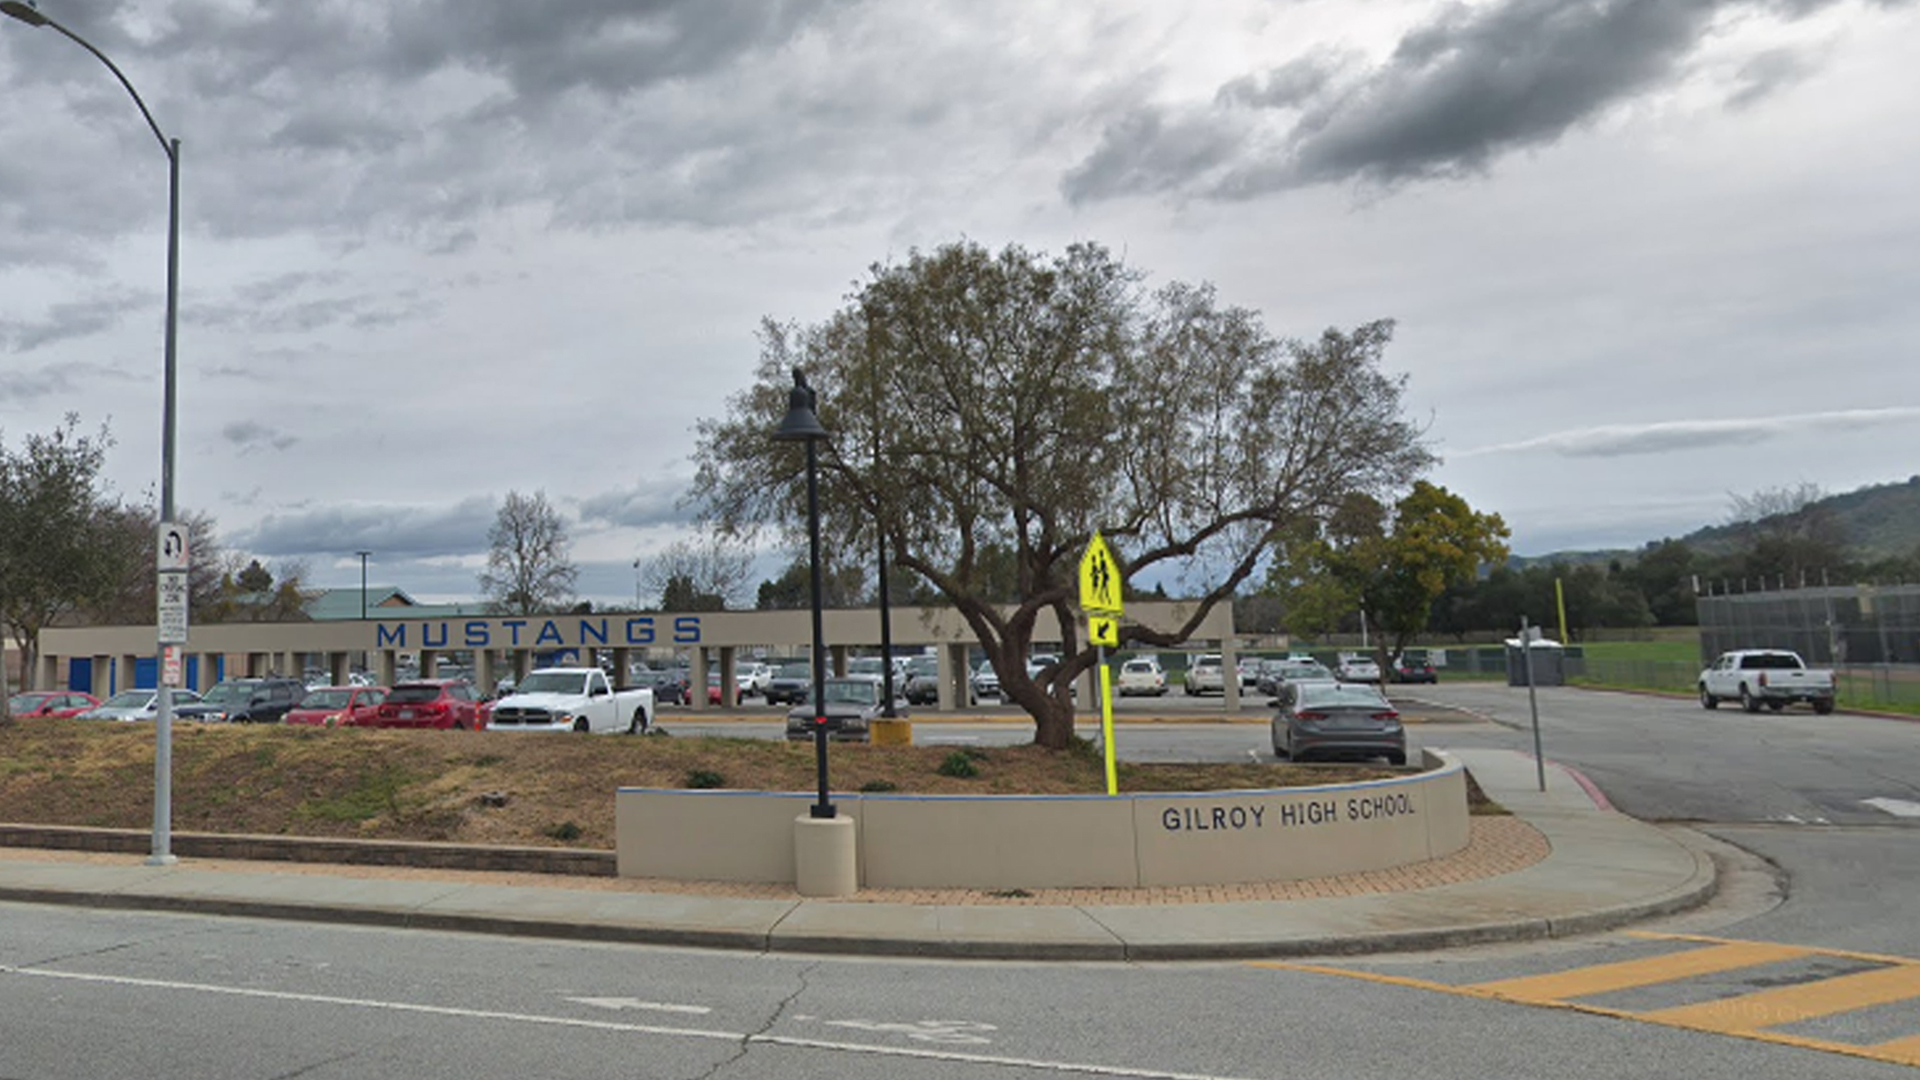 Gilroy High School is seen in a Google Maps Street View image.